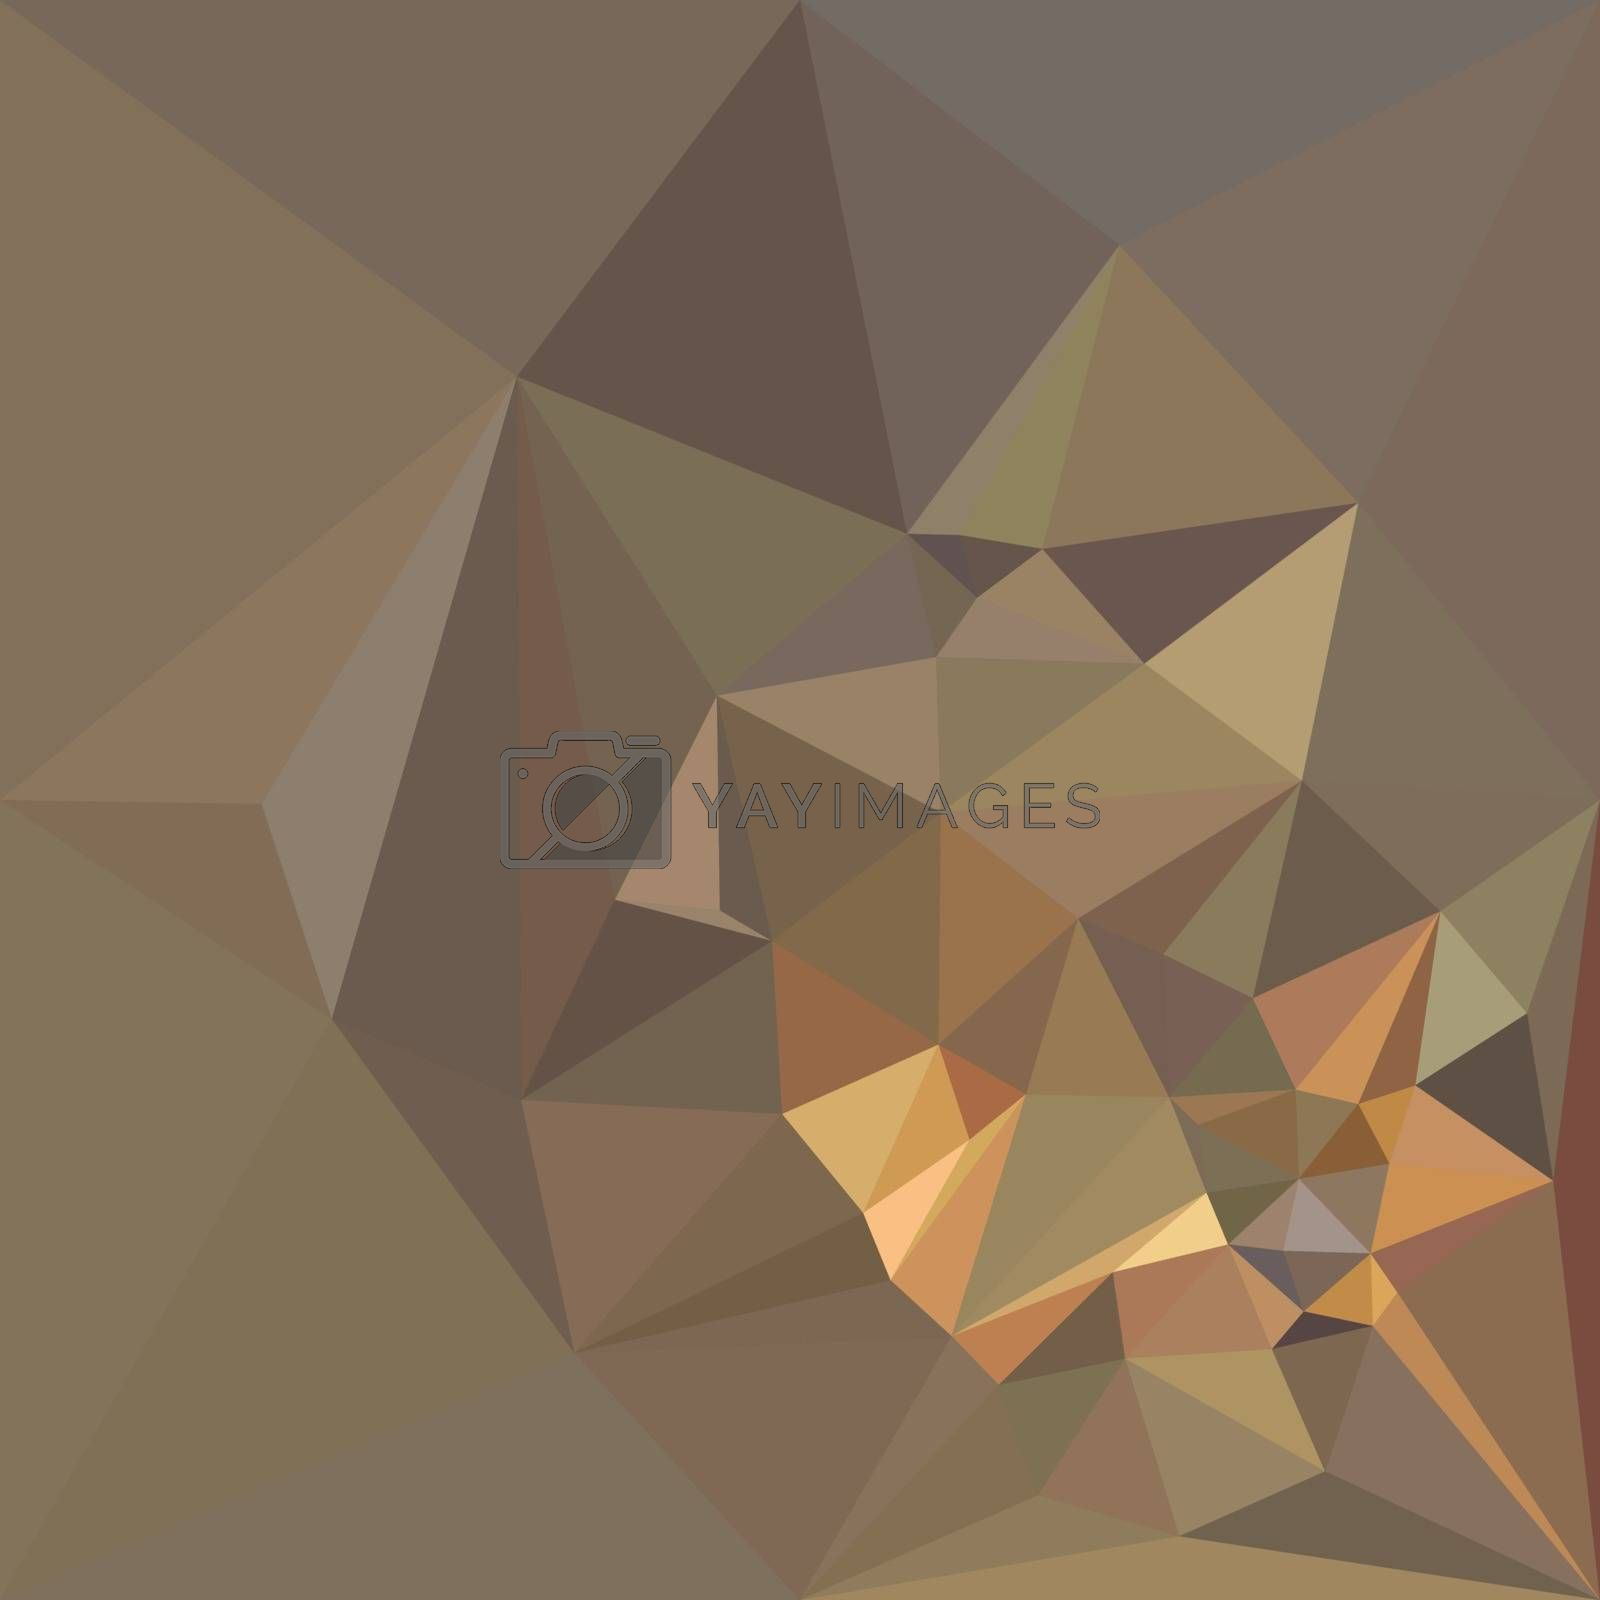 Low polygon style illustration of a dark tan brown abstract geometric background.